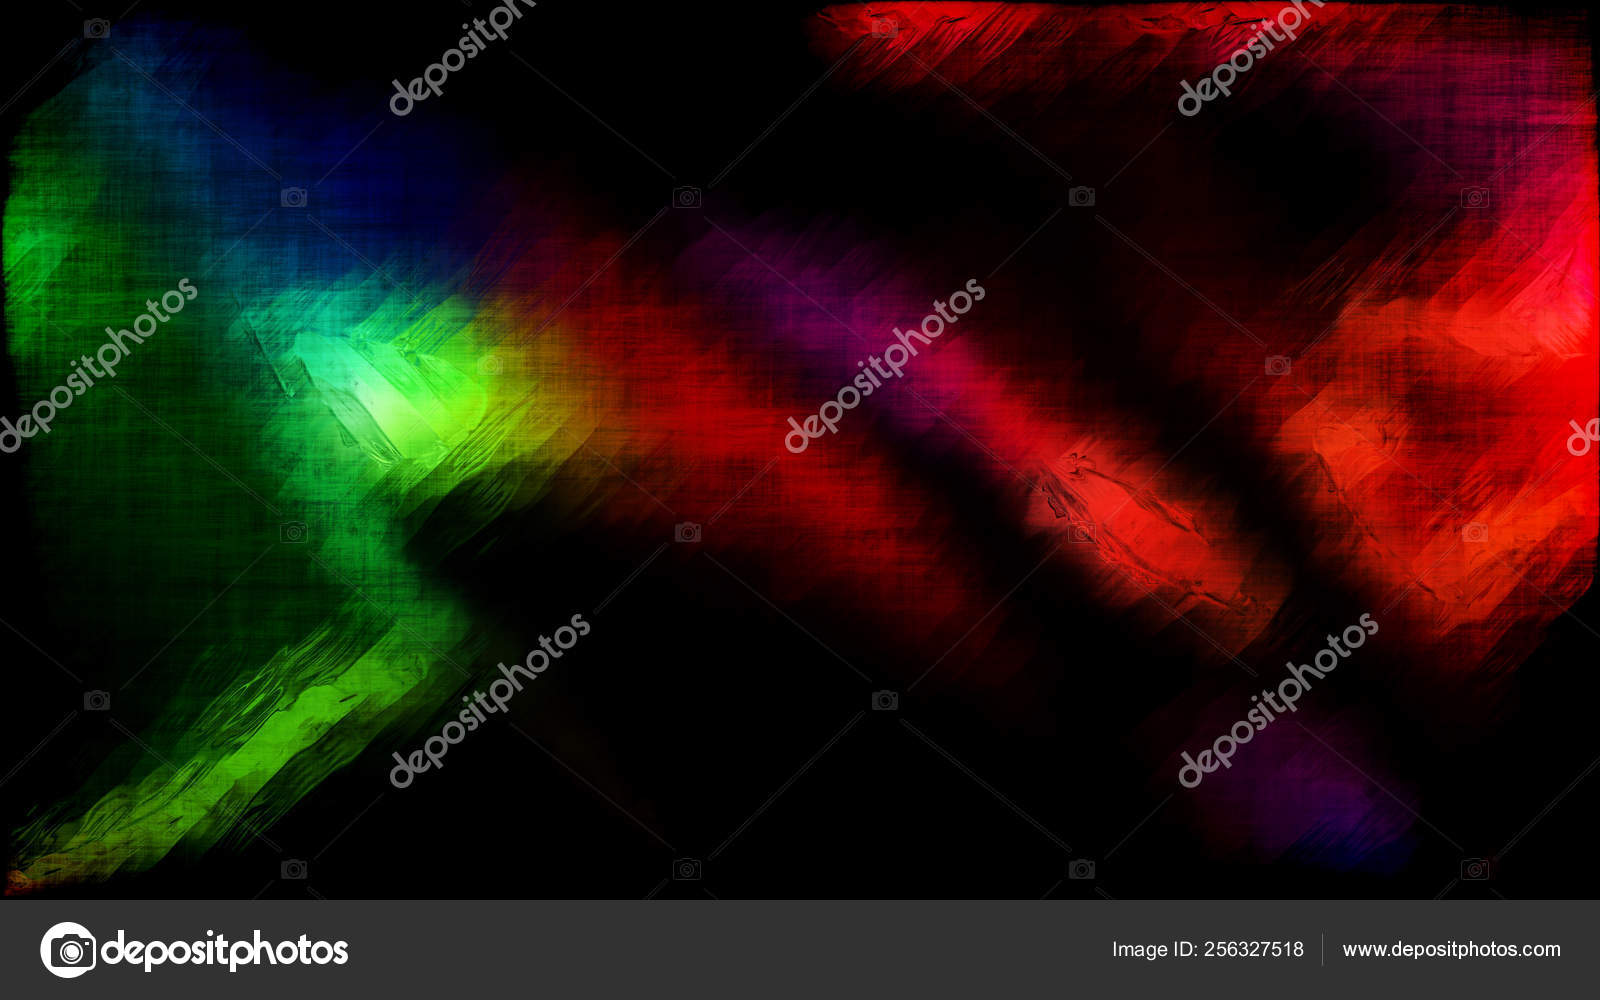 Abstract Cool Grunge Texture Background Image Stock Photo